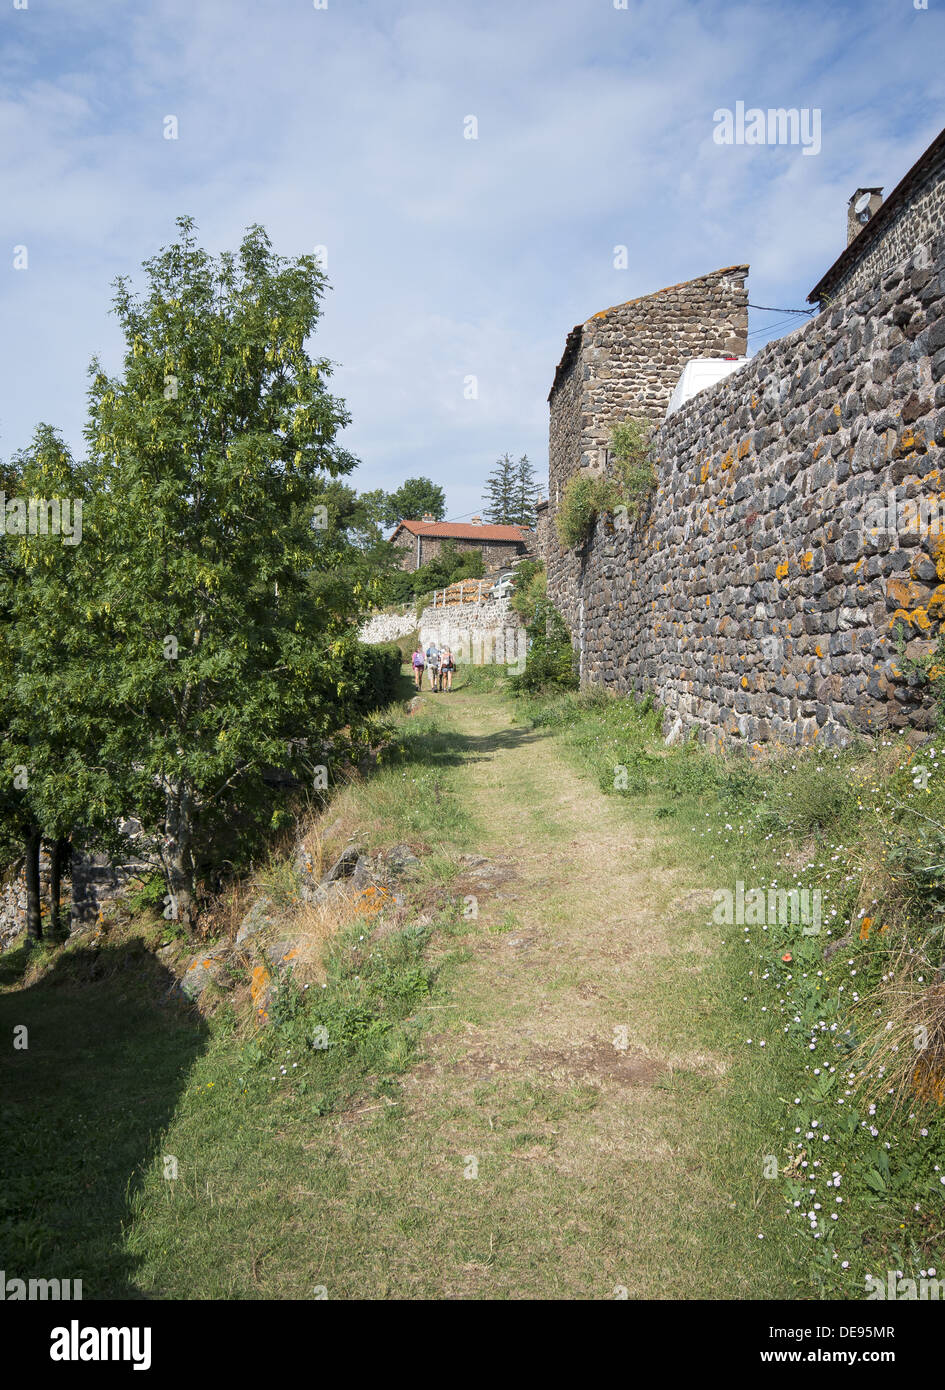 Pilgrims walking into the small French village of La Roche on the GR65 the Way of St James in France - Stock Image